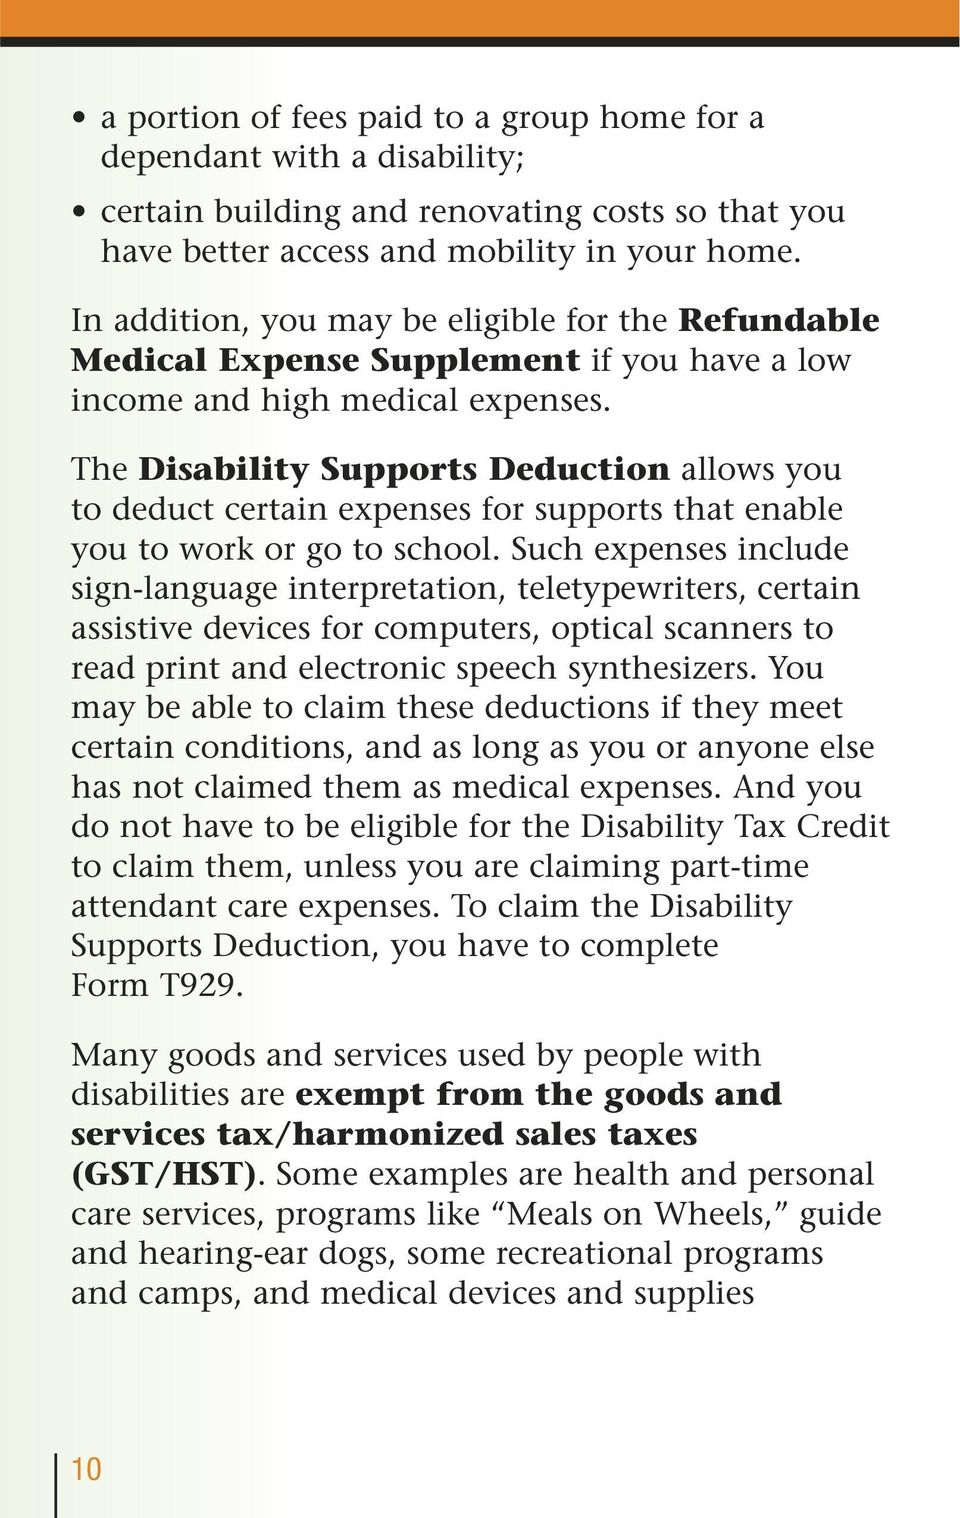 The Disability Supports Deduction allows you to deduct certain expenses for supports that enable you to work or go to school.